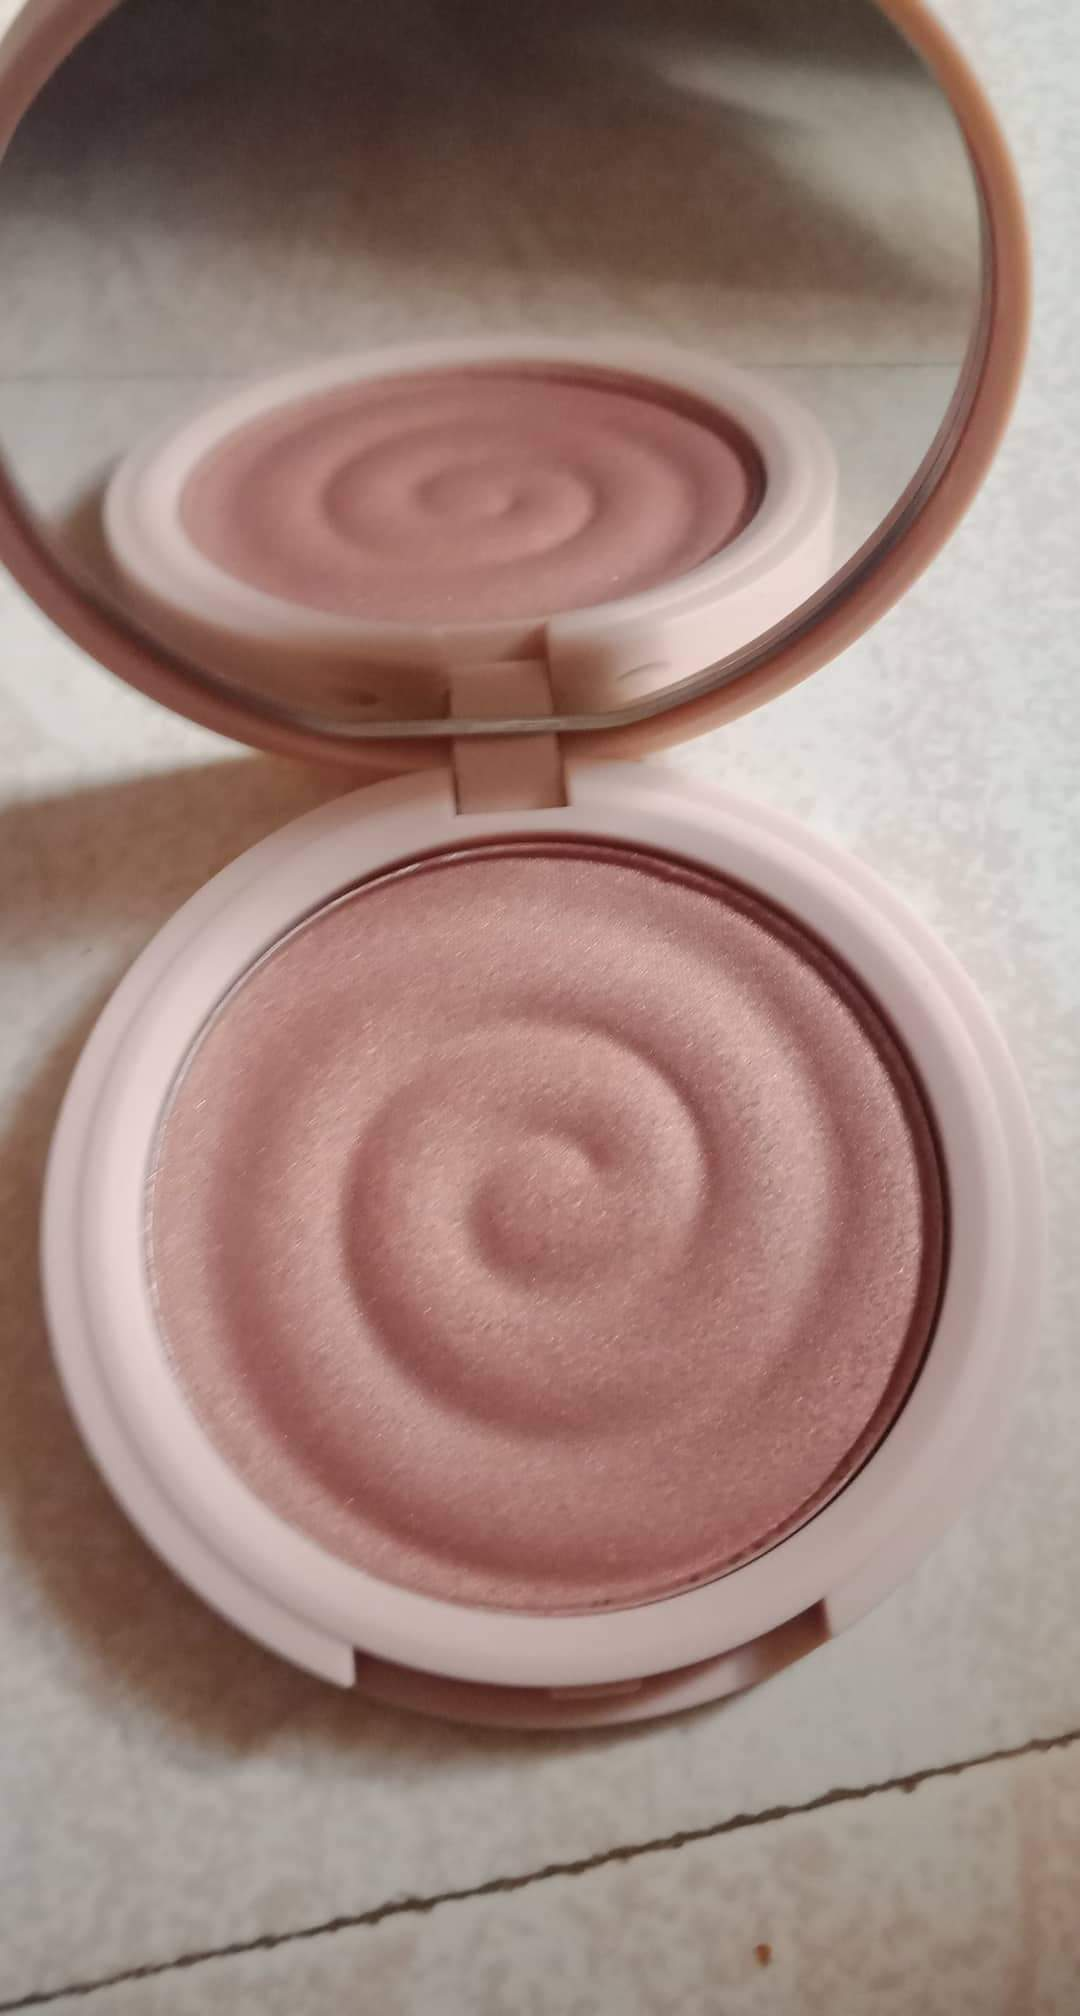 MyGlamm K.PLAY FLAVOURED BLUSH – JUICY STRAWBERRY-Natural looking blush!-By poonam_kakkar